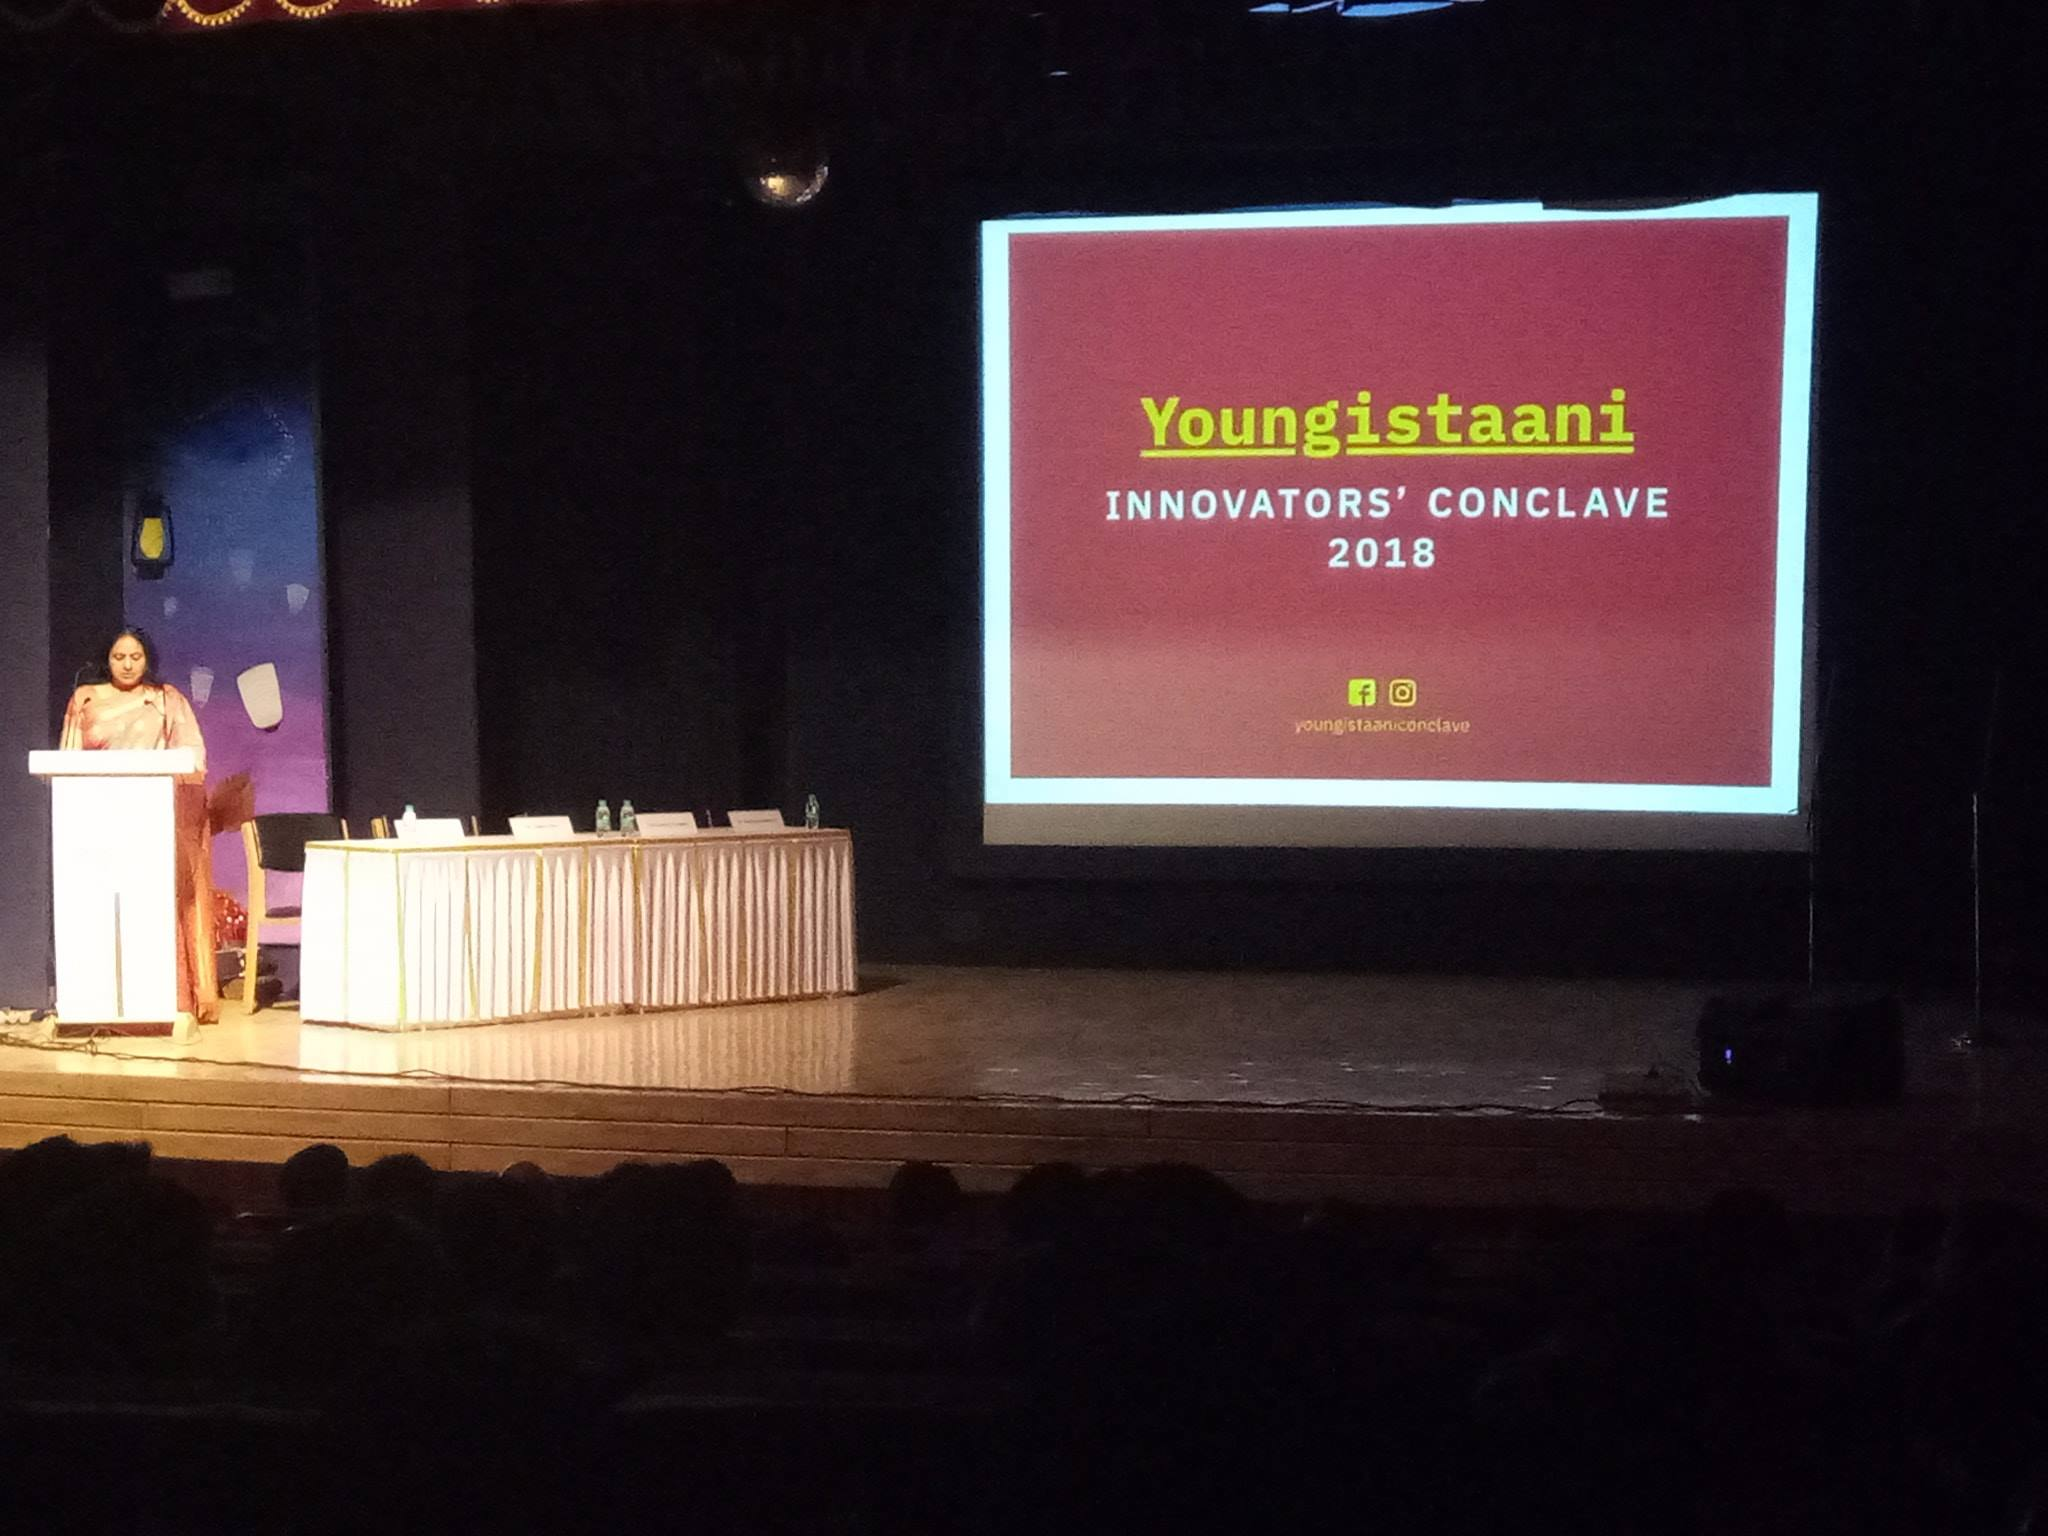 Youngistaaani- Innovators' Conclave 2018